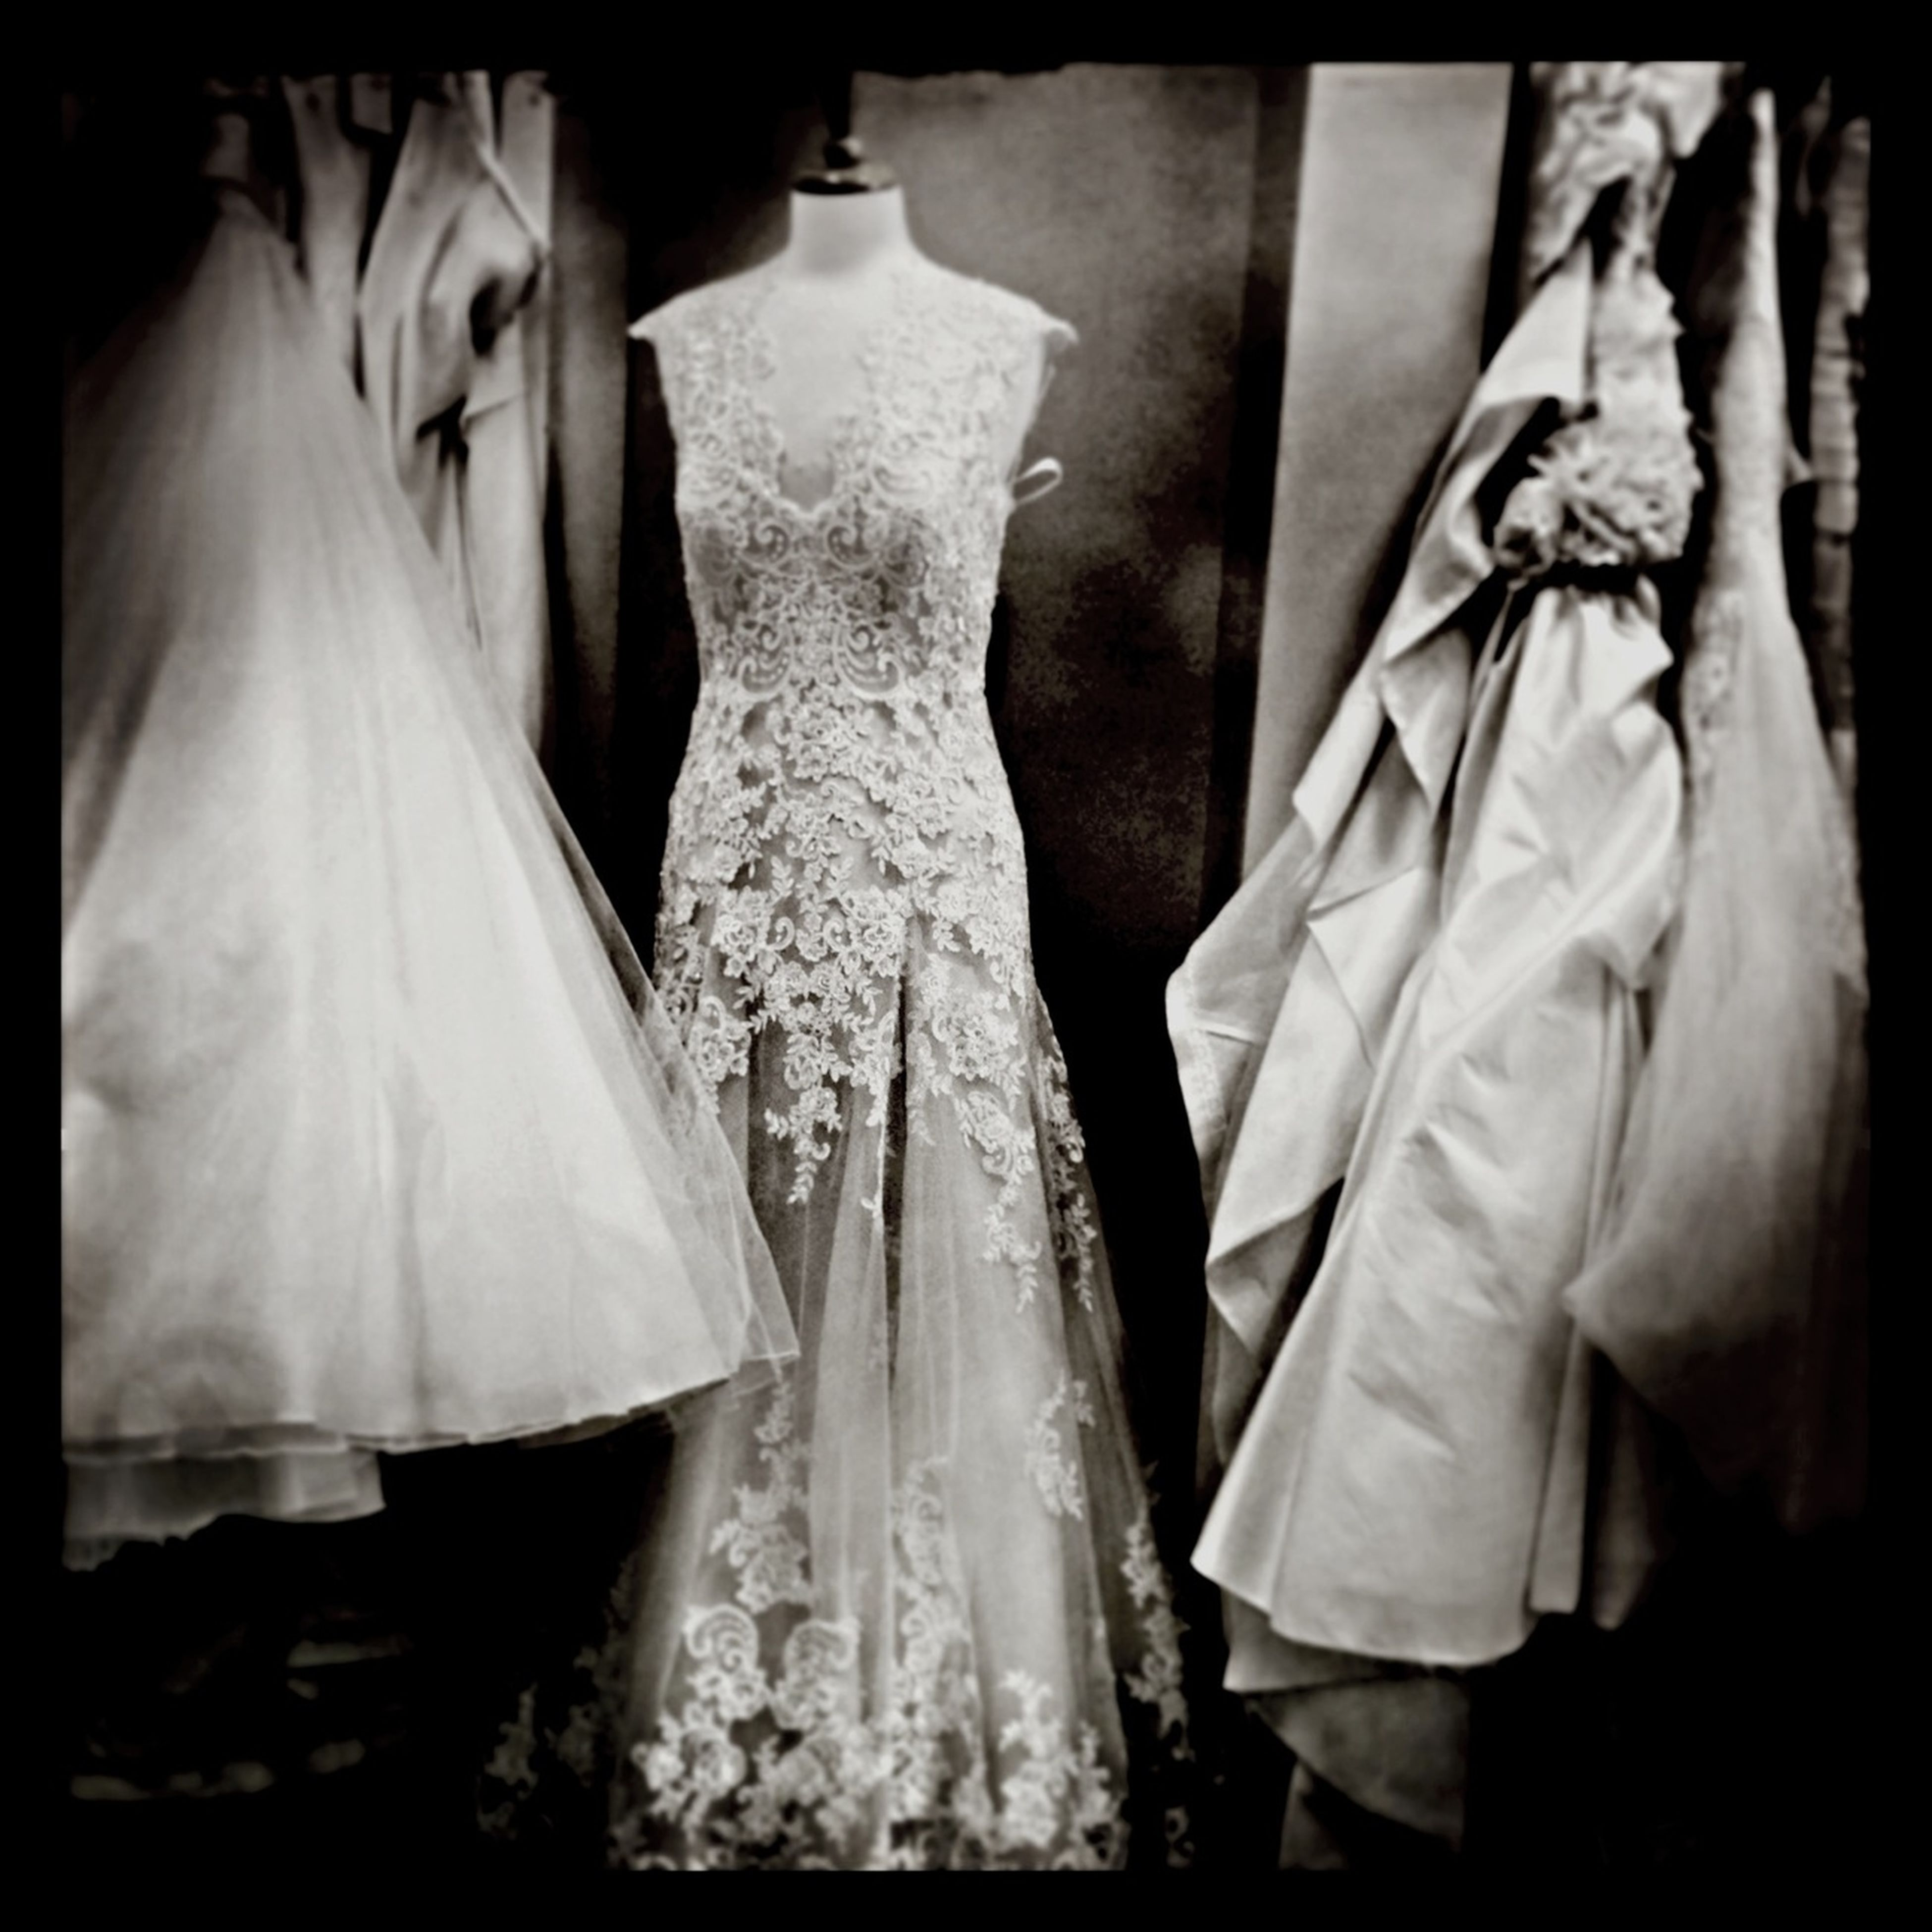 transfer print, indoors, auto post production filter, hanging, clothing, for sale, textile, variation, retail, close-up, mannequin, in a row, panoramic, art and craft, choice, still life, human representation, sale, religion, fabric